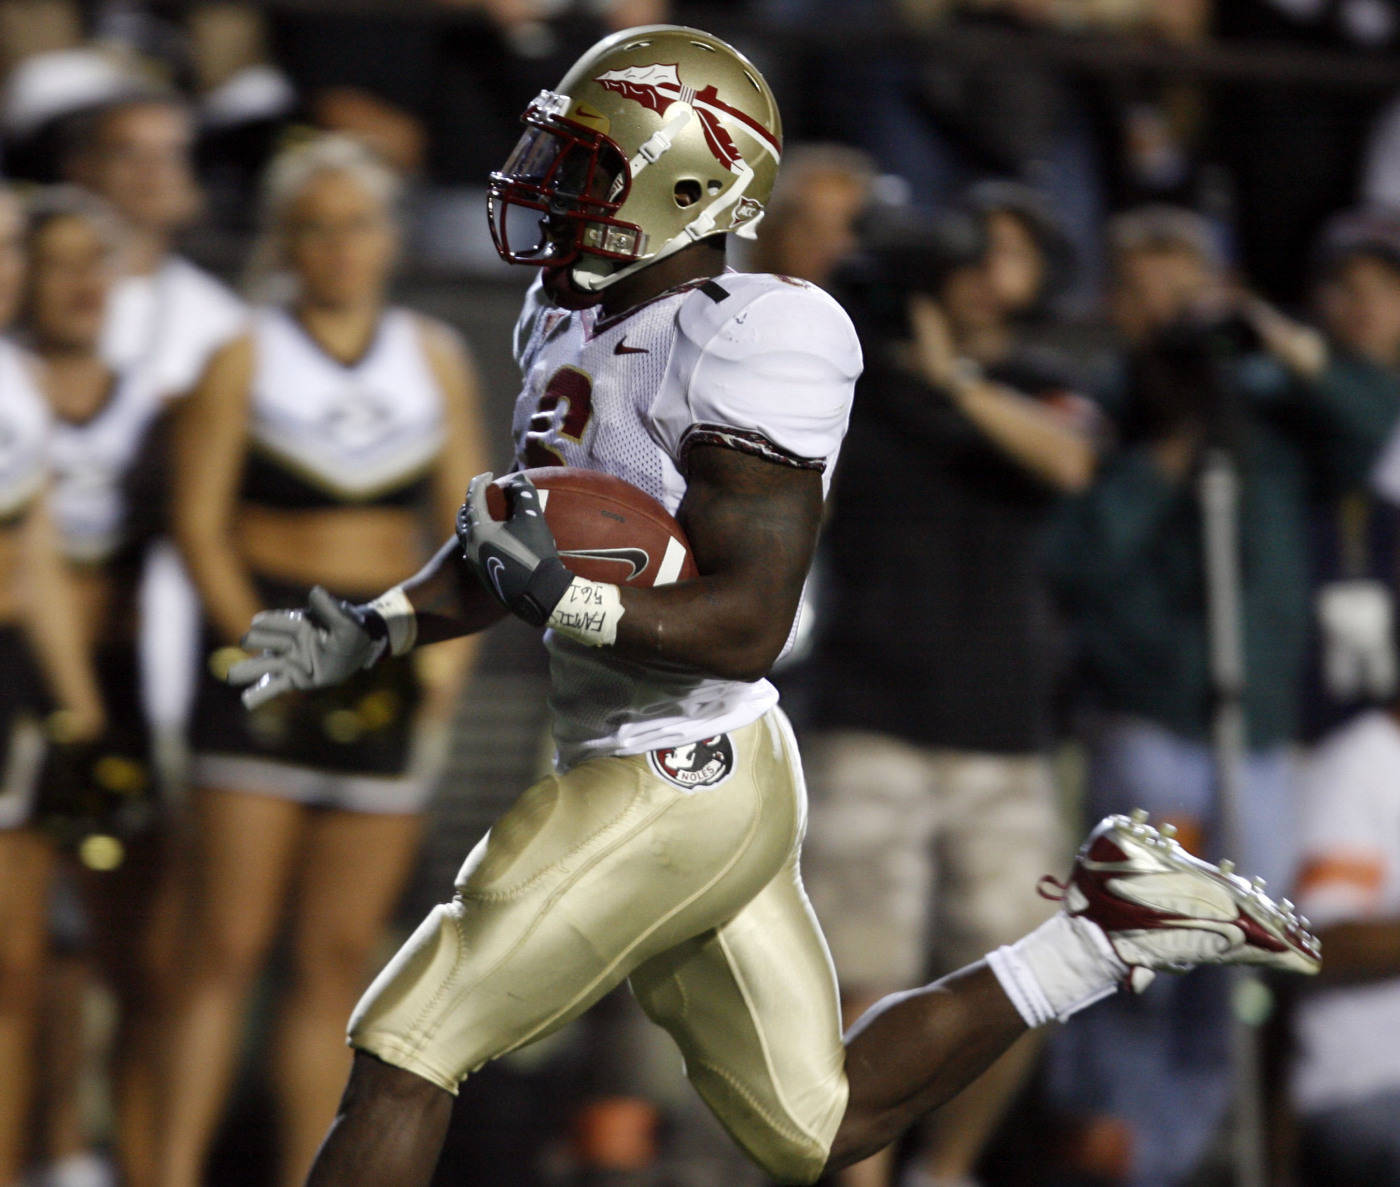 Florida State tailback Antone Smith runs into the end zone for a touchdown against Colorado in the second quarter. (AP Photo/David Zalubowski)